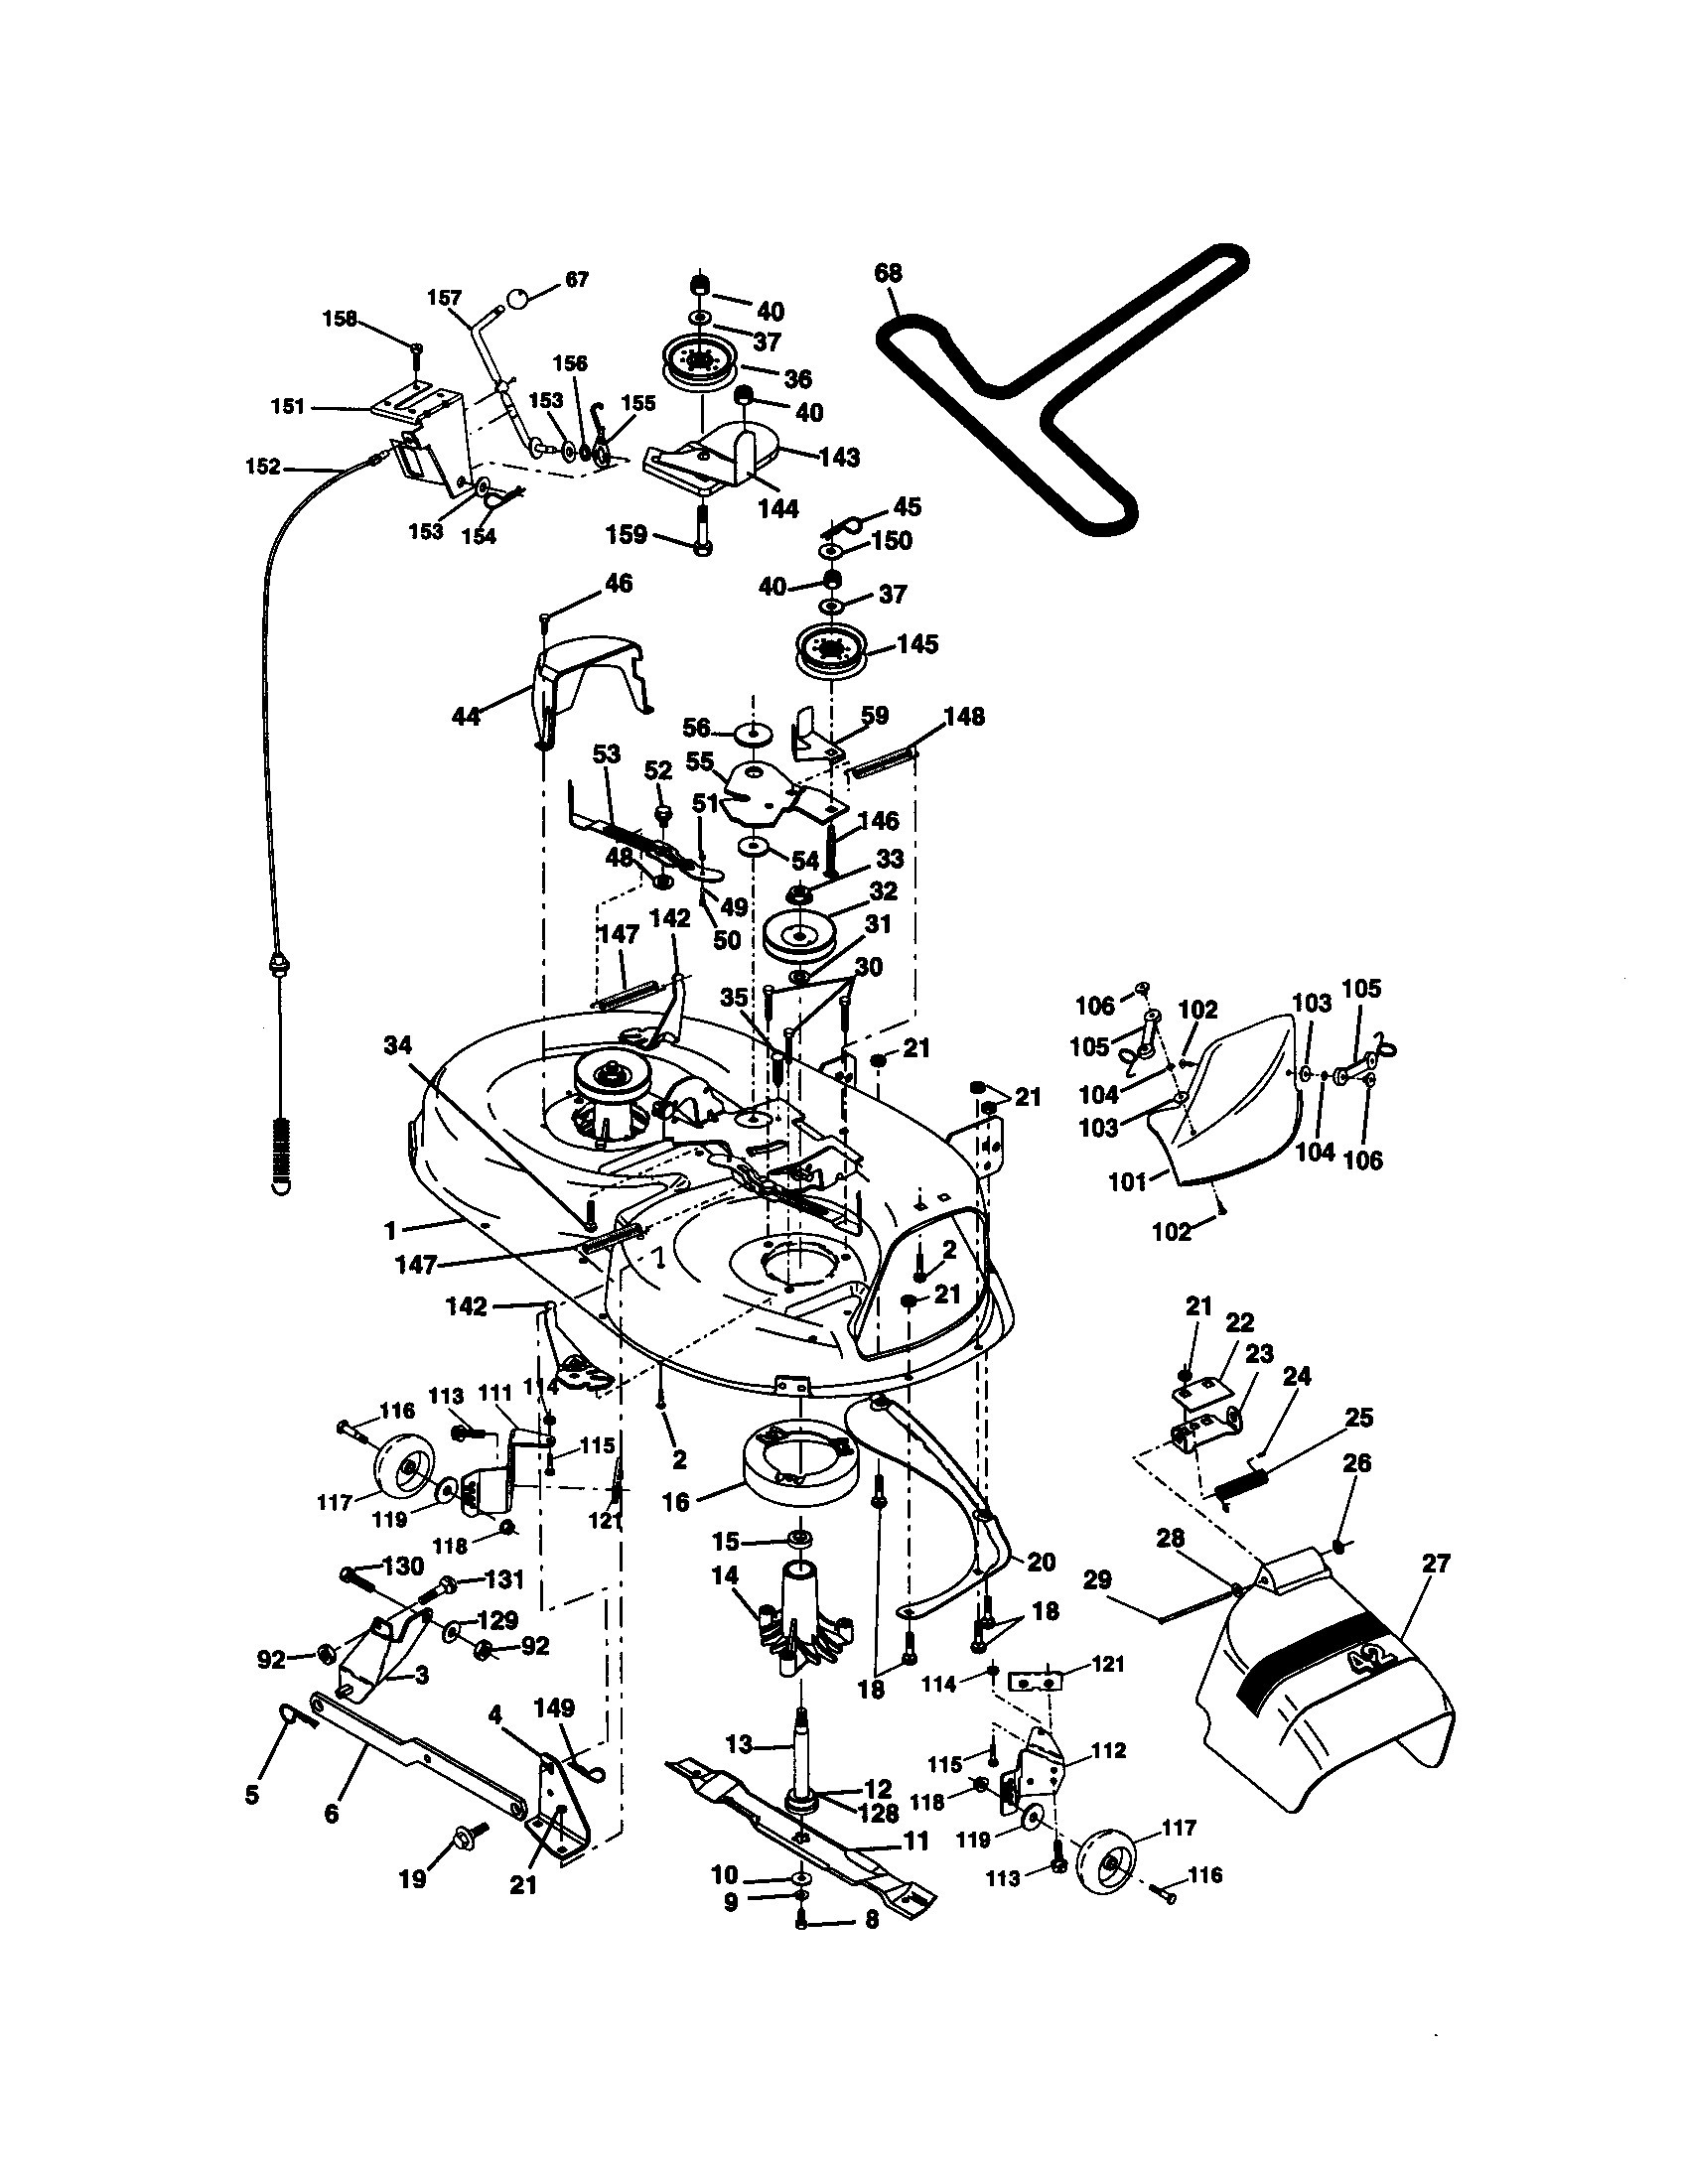 hight resolution of briggs and stratton 17 5 hp engine diagram wiring diagrambriggs and stratton 17 5 hp engine